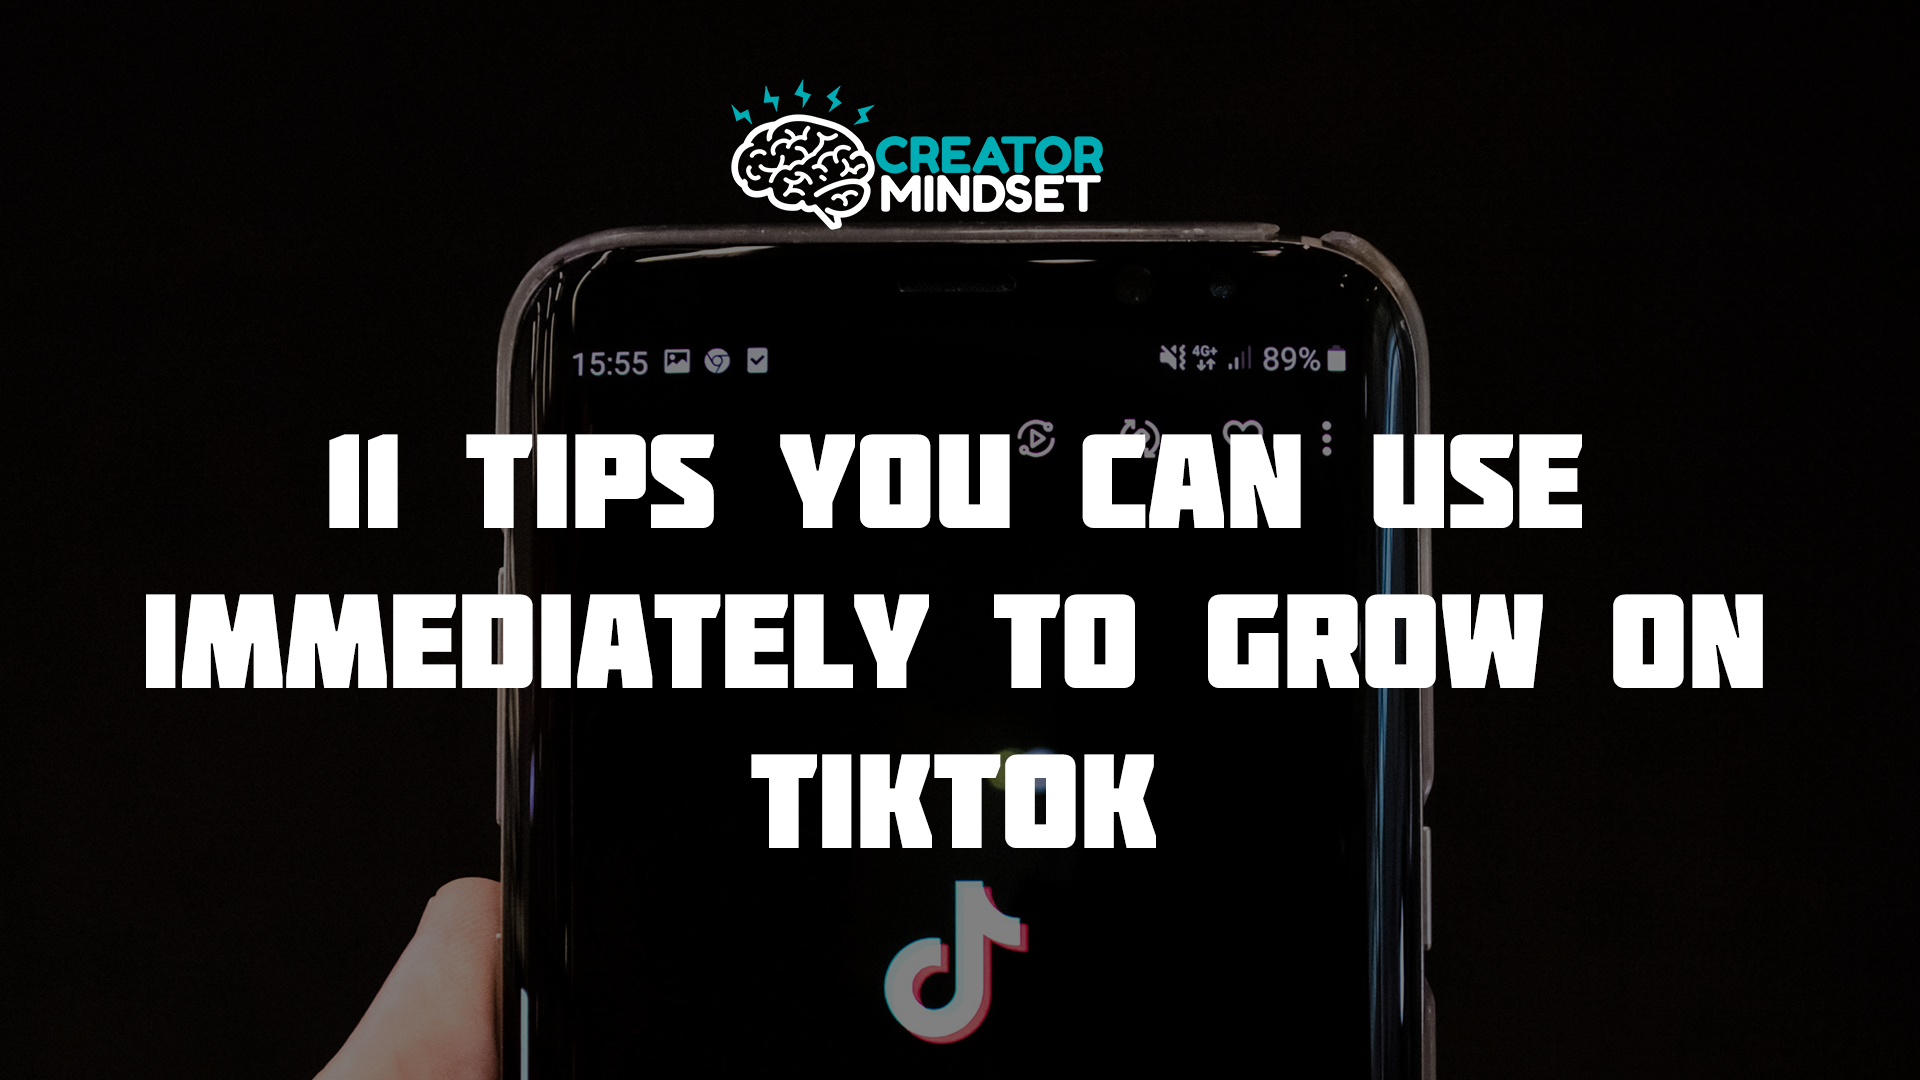 If you want to be popular on TikTok, then this blog post is for you! We have compiled a list of 10 tips and tricks that will help your popularity grow. These are tried and tested tips which can be used straight away to see results. From using hashtags correctly to knowing when the best time is to upload videos, these are all great ways in which you can increase your popularity on TikTok.